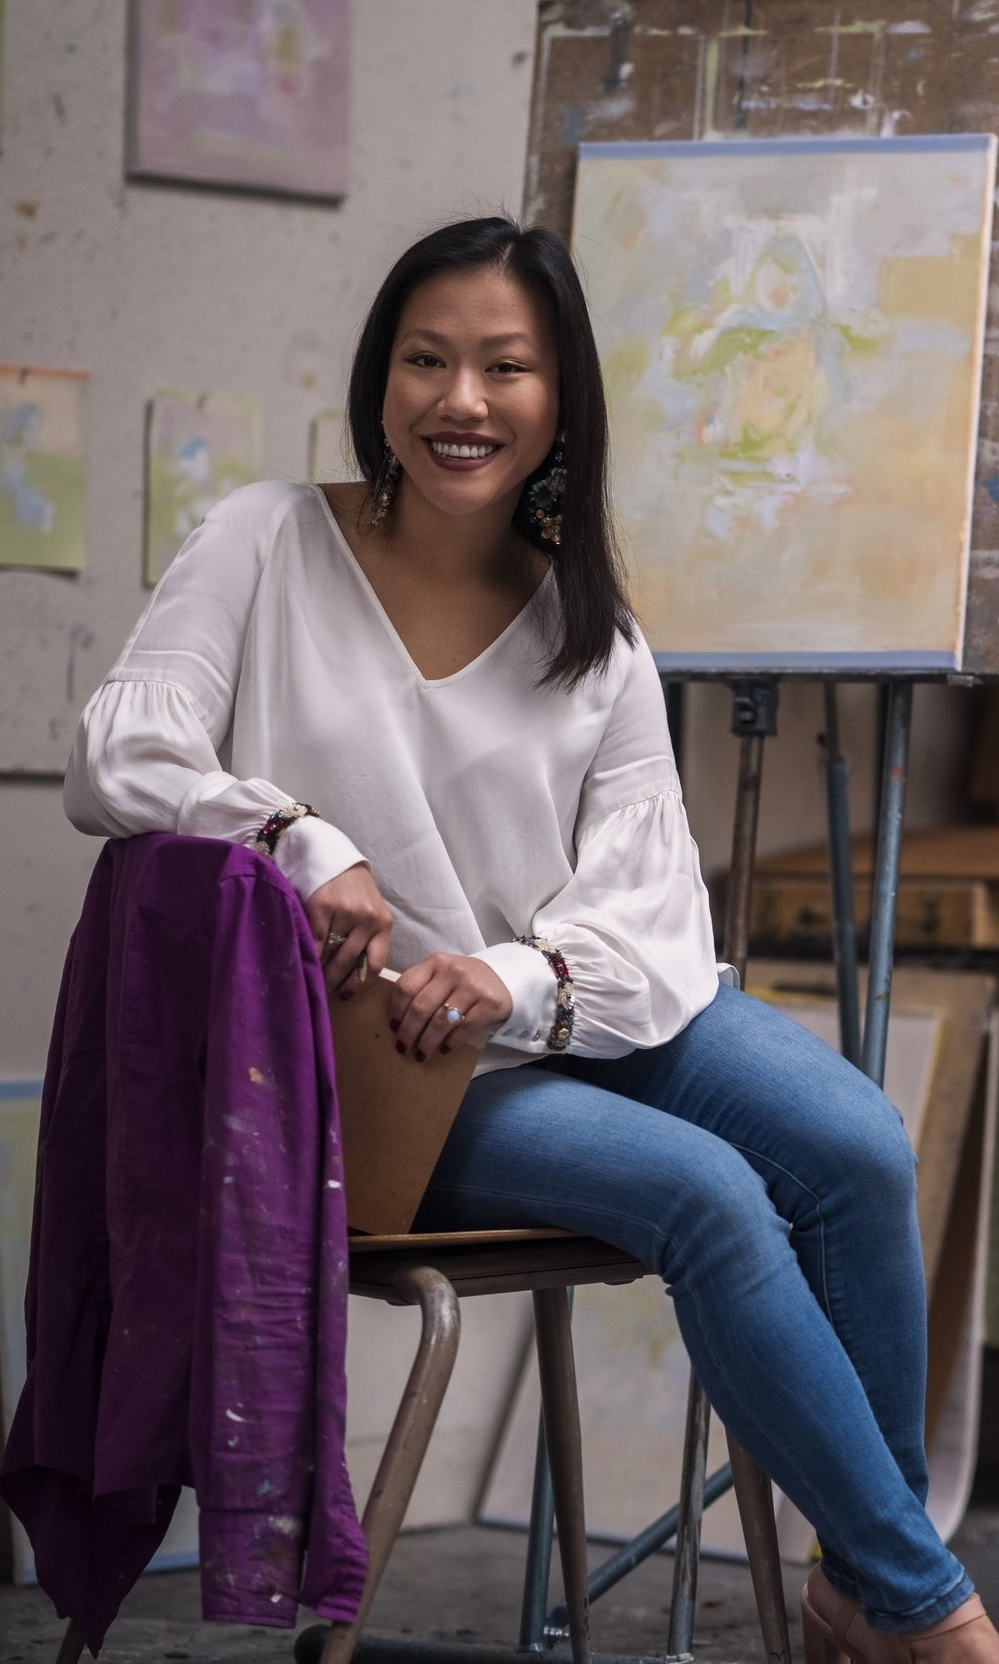 ROSE MARIE LAU - Rose Marie Lau is from Meridian, Mississippi.  She is currently pursuing her B.F.A. in Drawing and Painting with a minor in Art History at the University of Southern. She has been an intern for The Meridian Museum of Art and The Lauren Rogers Museum of Art. She has also worked for the university's Art and Design Gallery and the Office of Art and Design. Her focus is to spread, educate, and preserve the importance of art and the joys it can bring. She will continue her studies in Rome, Italy at The Rome Art Program over the summer.